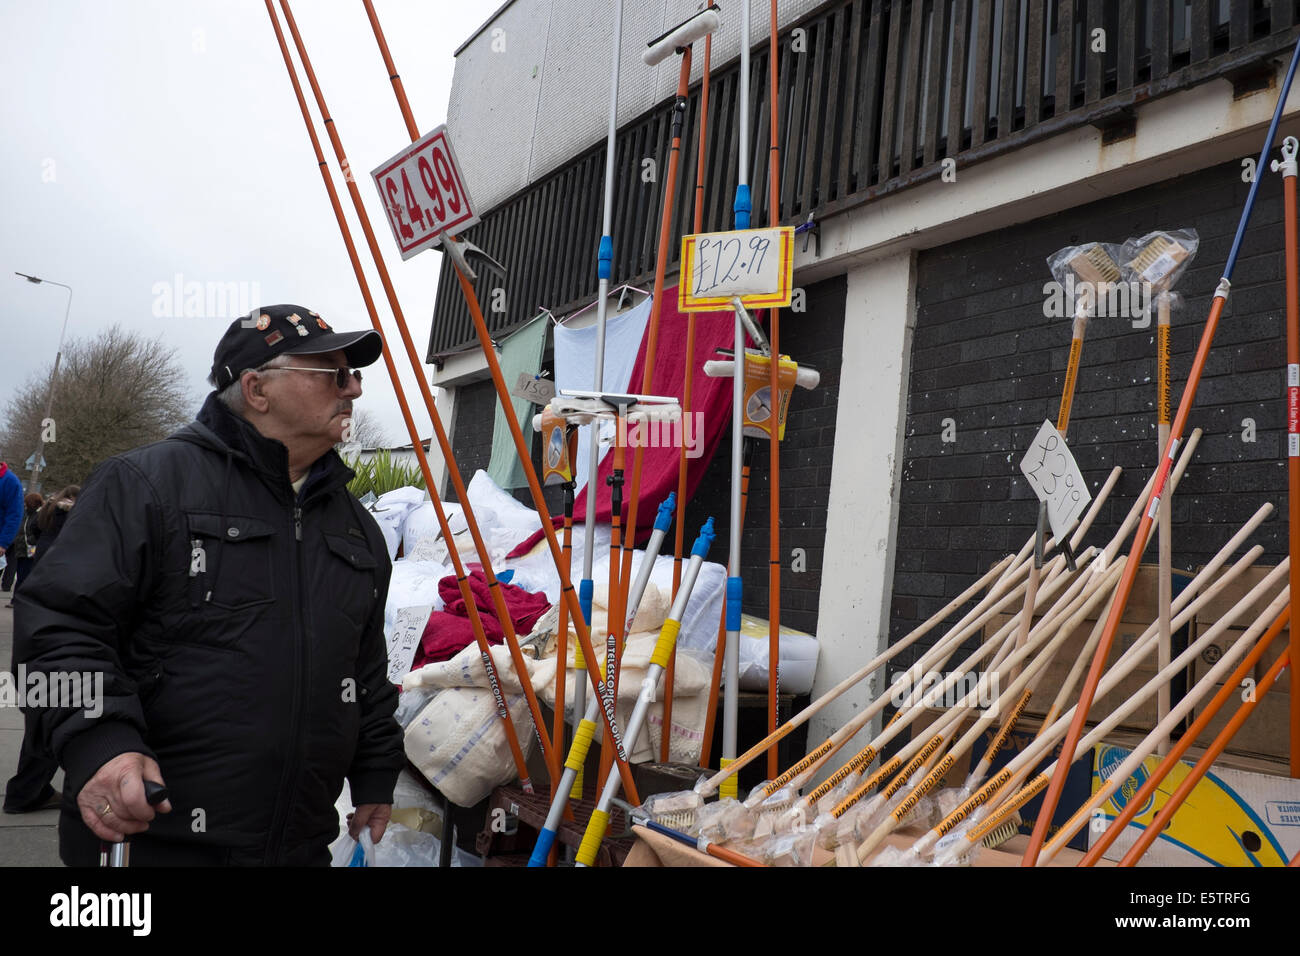 Man looking at Brooms Brushes and Mops For Sale - Stock Image